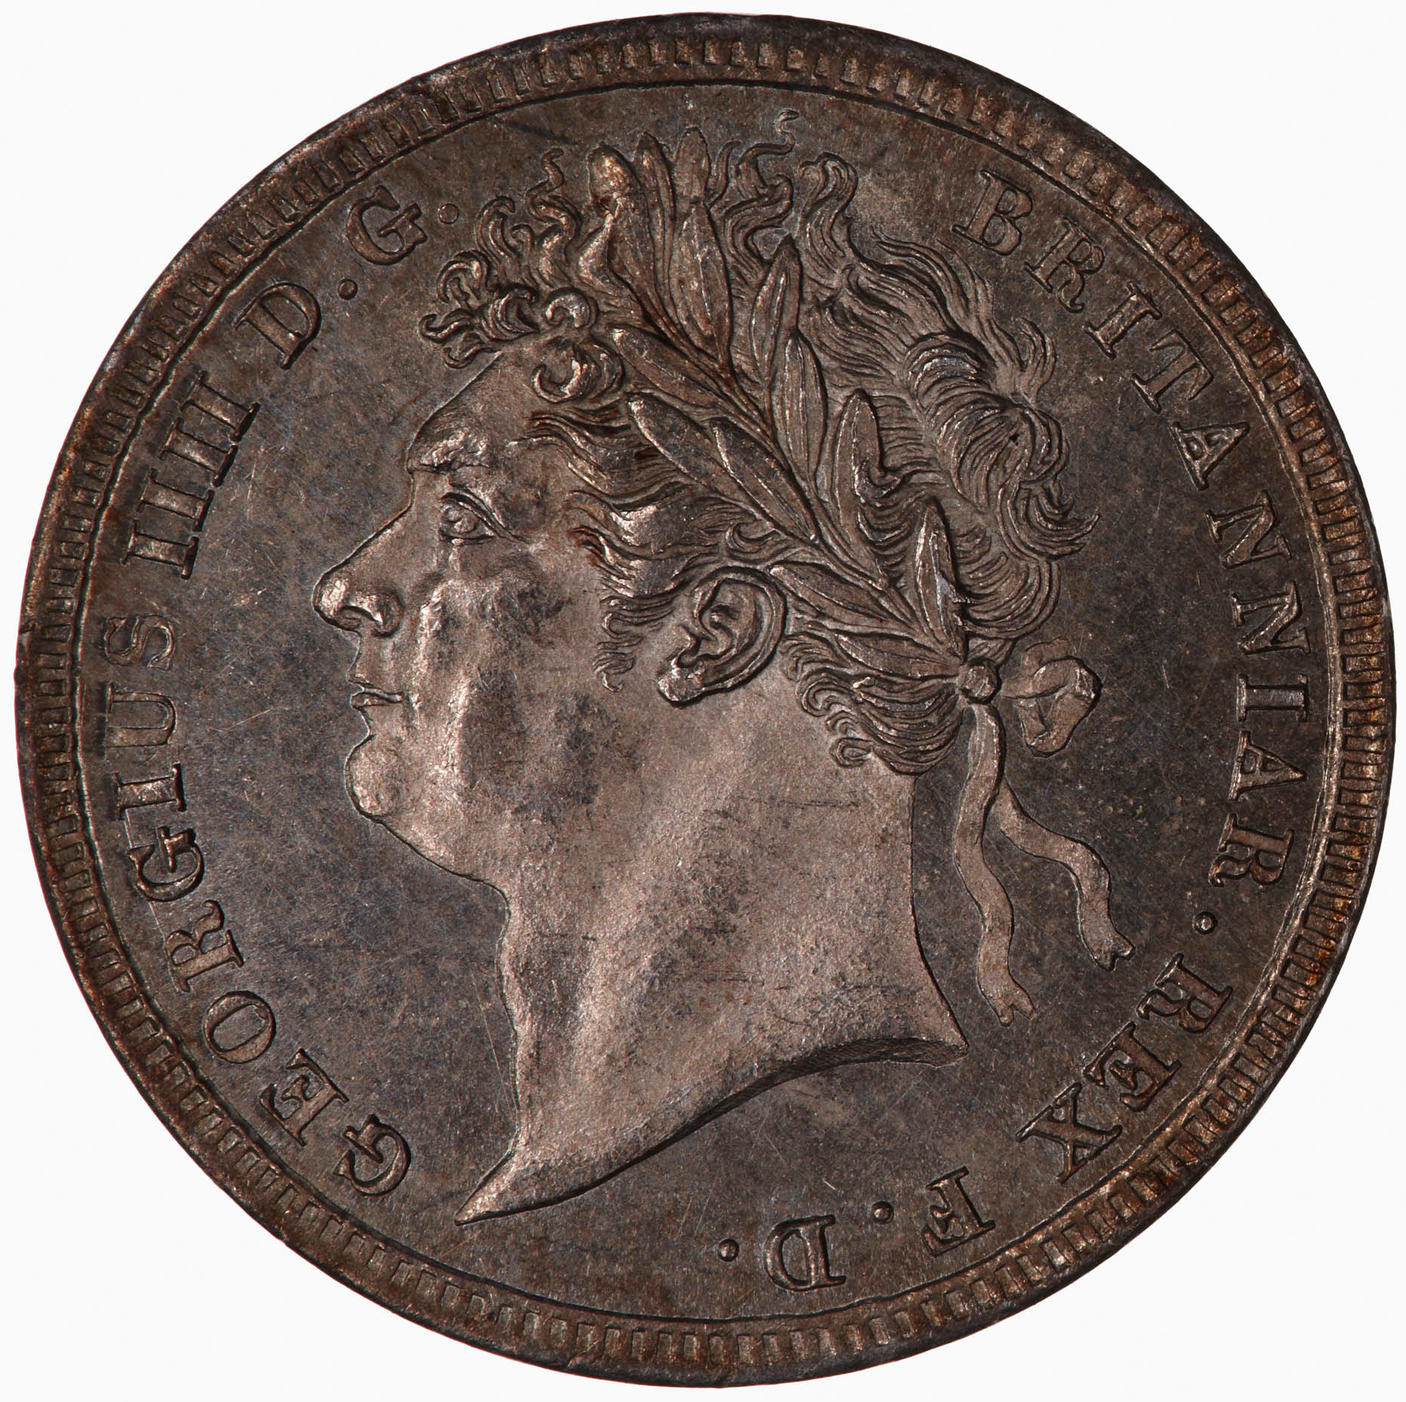 Threepence 1827 (Maundy): Photo Coin - Threepence, George IV, Great Britain, 1827